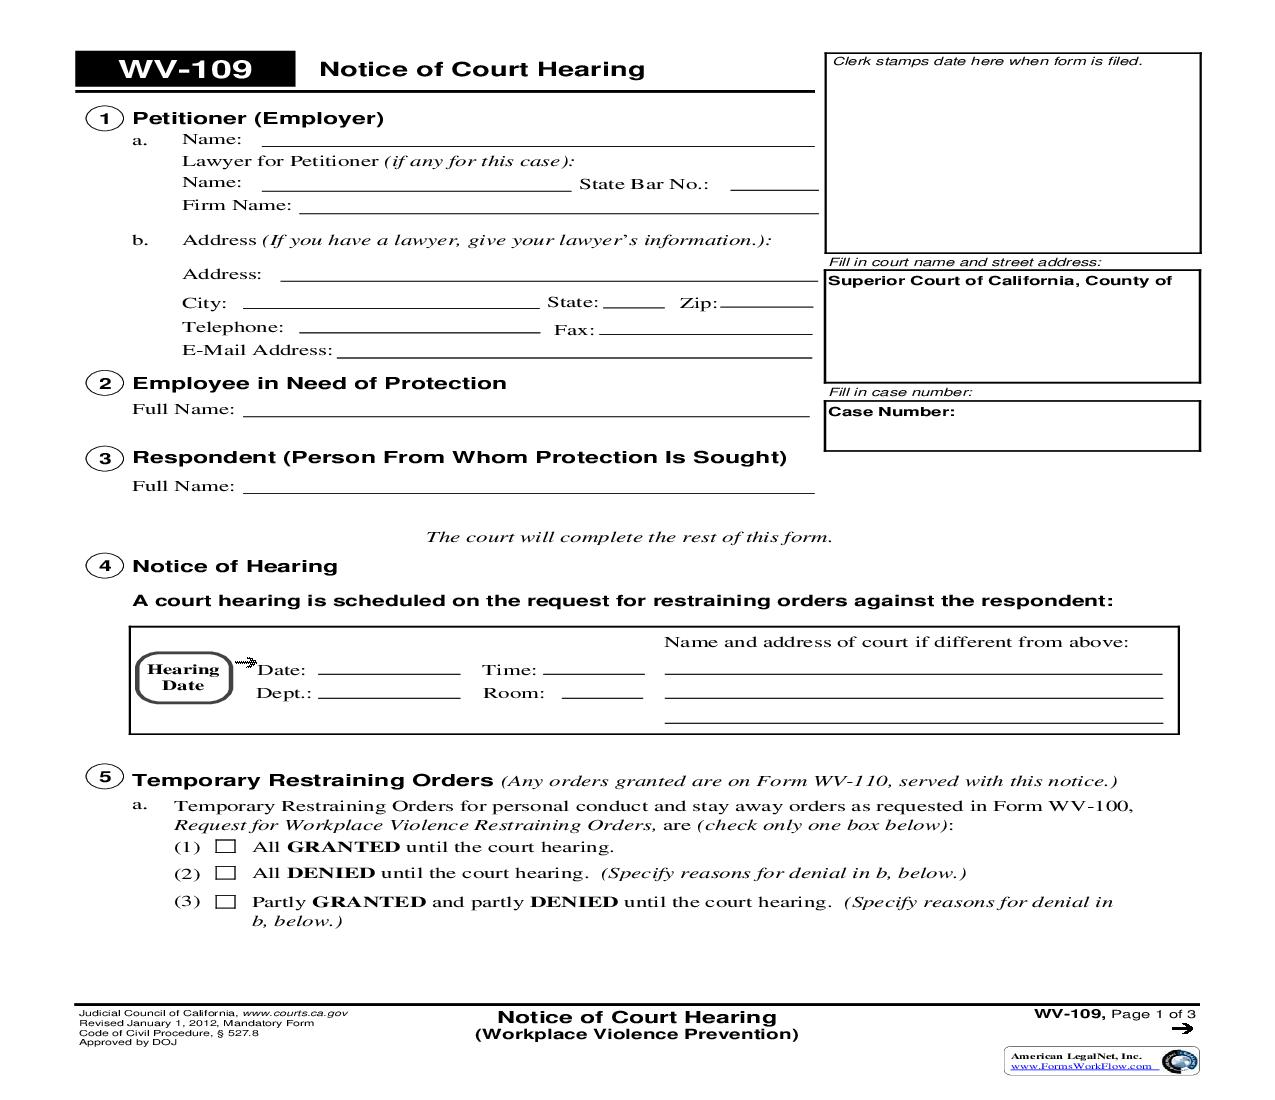 Notice Of Court Hearing (Workplace Violence Prevention) {WV-109}   Pdf Fpdf Doc Docx   California